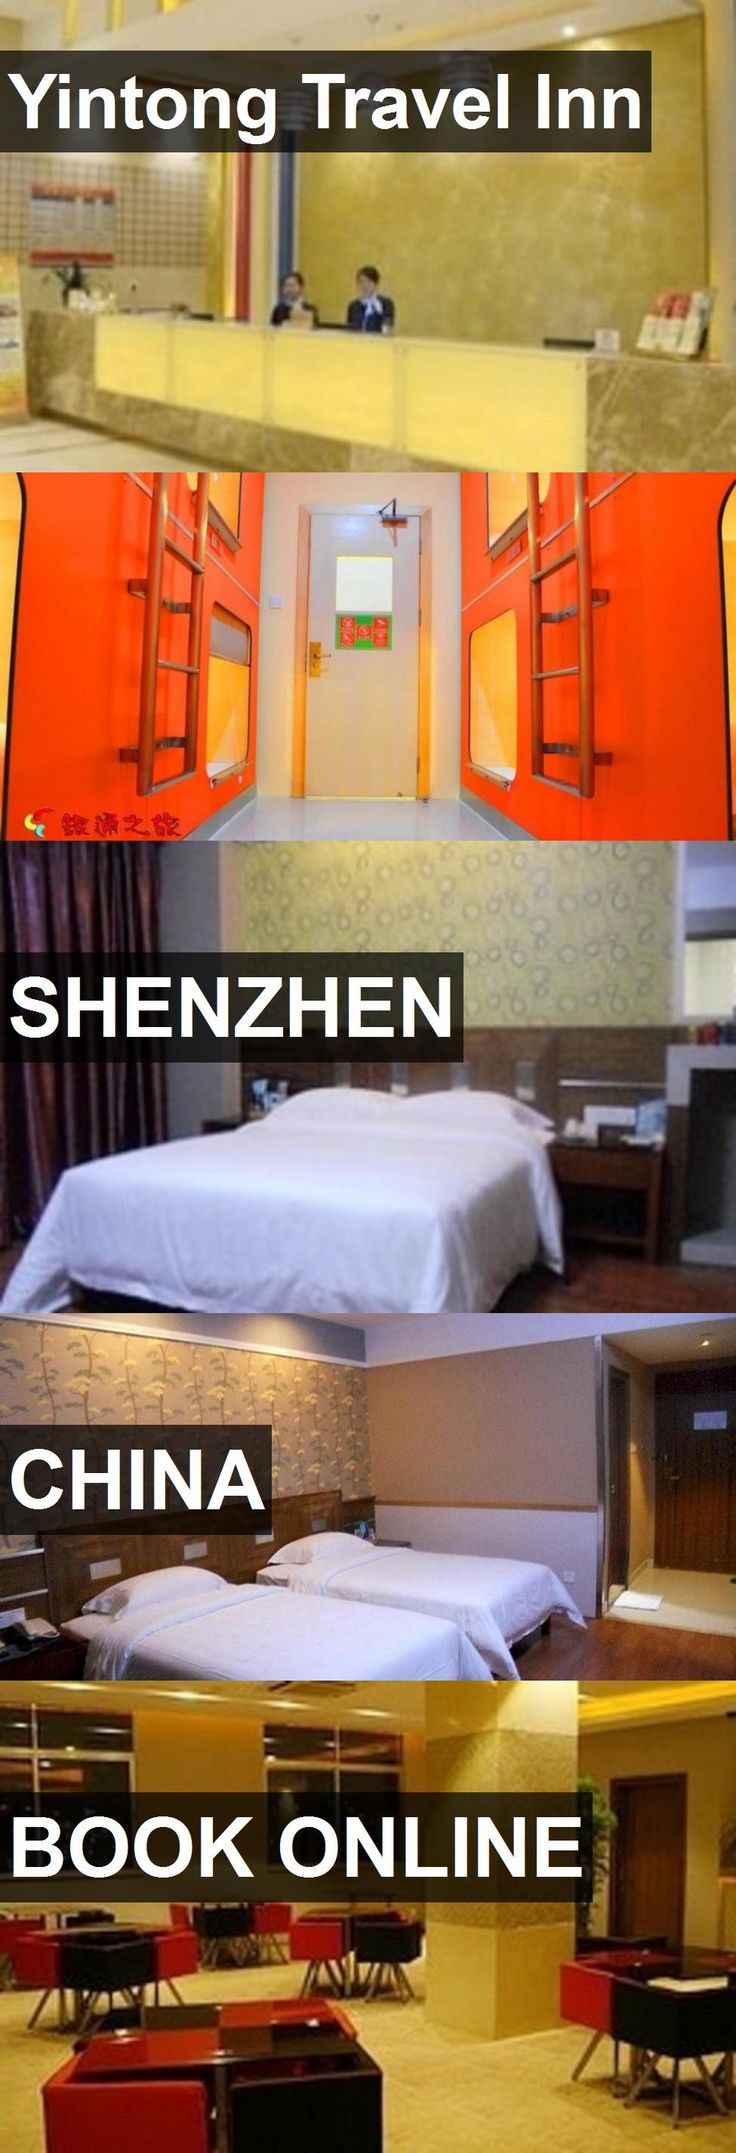 Hotel Yintong Travel Inn in Shenzhen, China. For more information, photos, reviews and best prices please follow the link. #China #Shenzhen #YintongTravelInn #hotel #travel #vacation